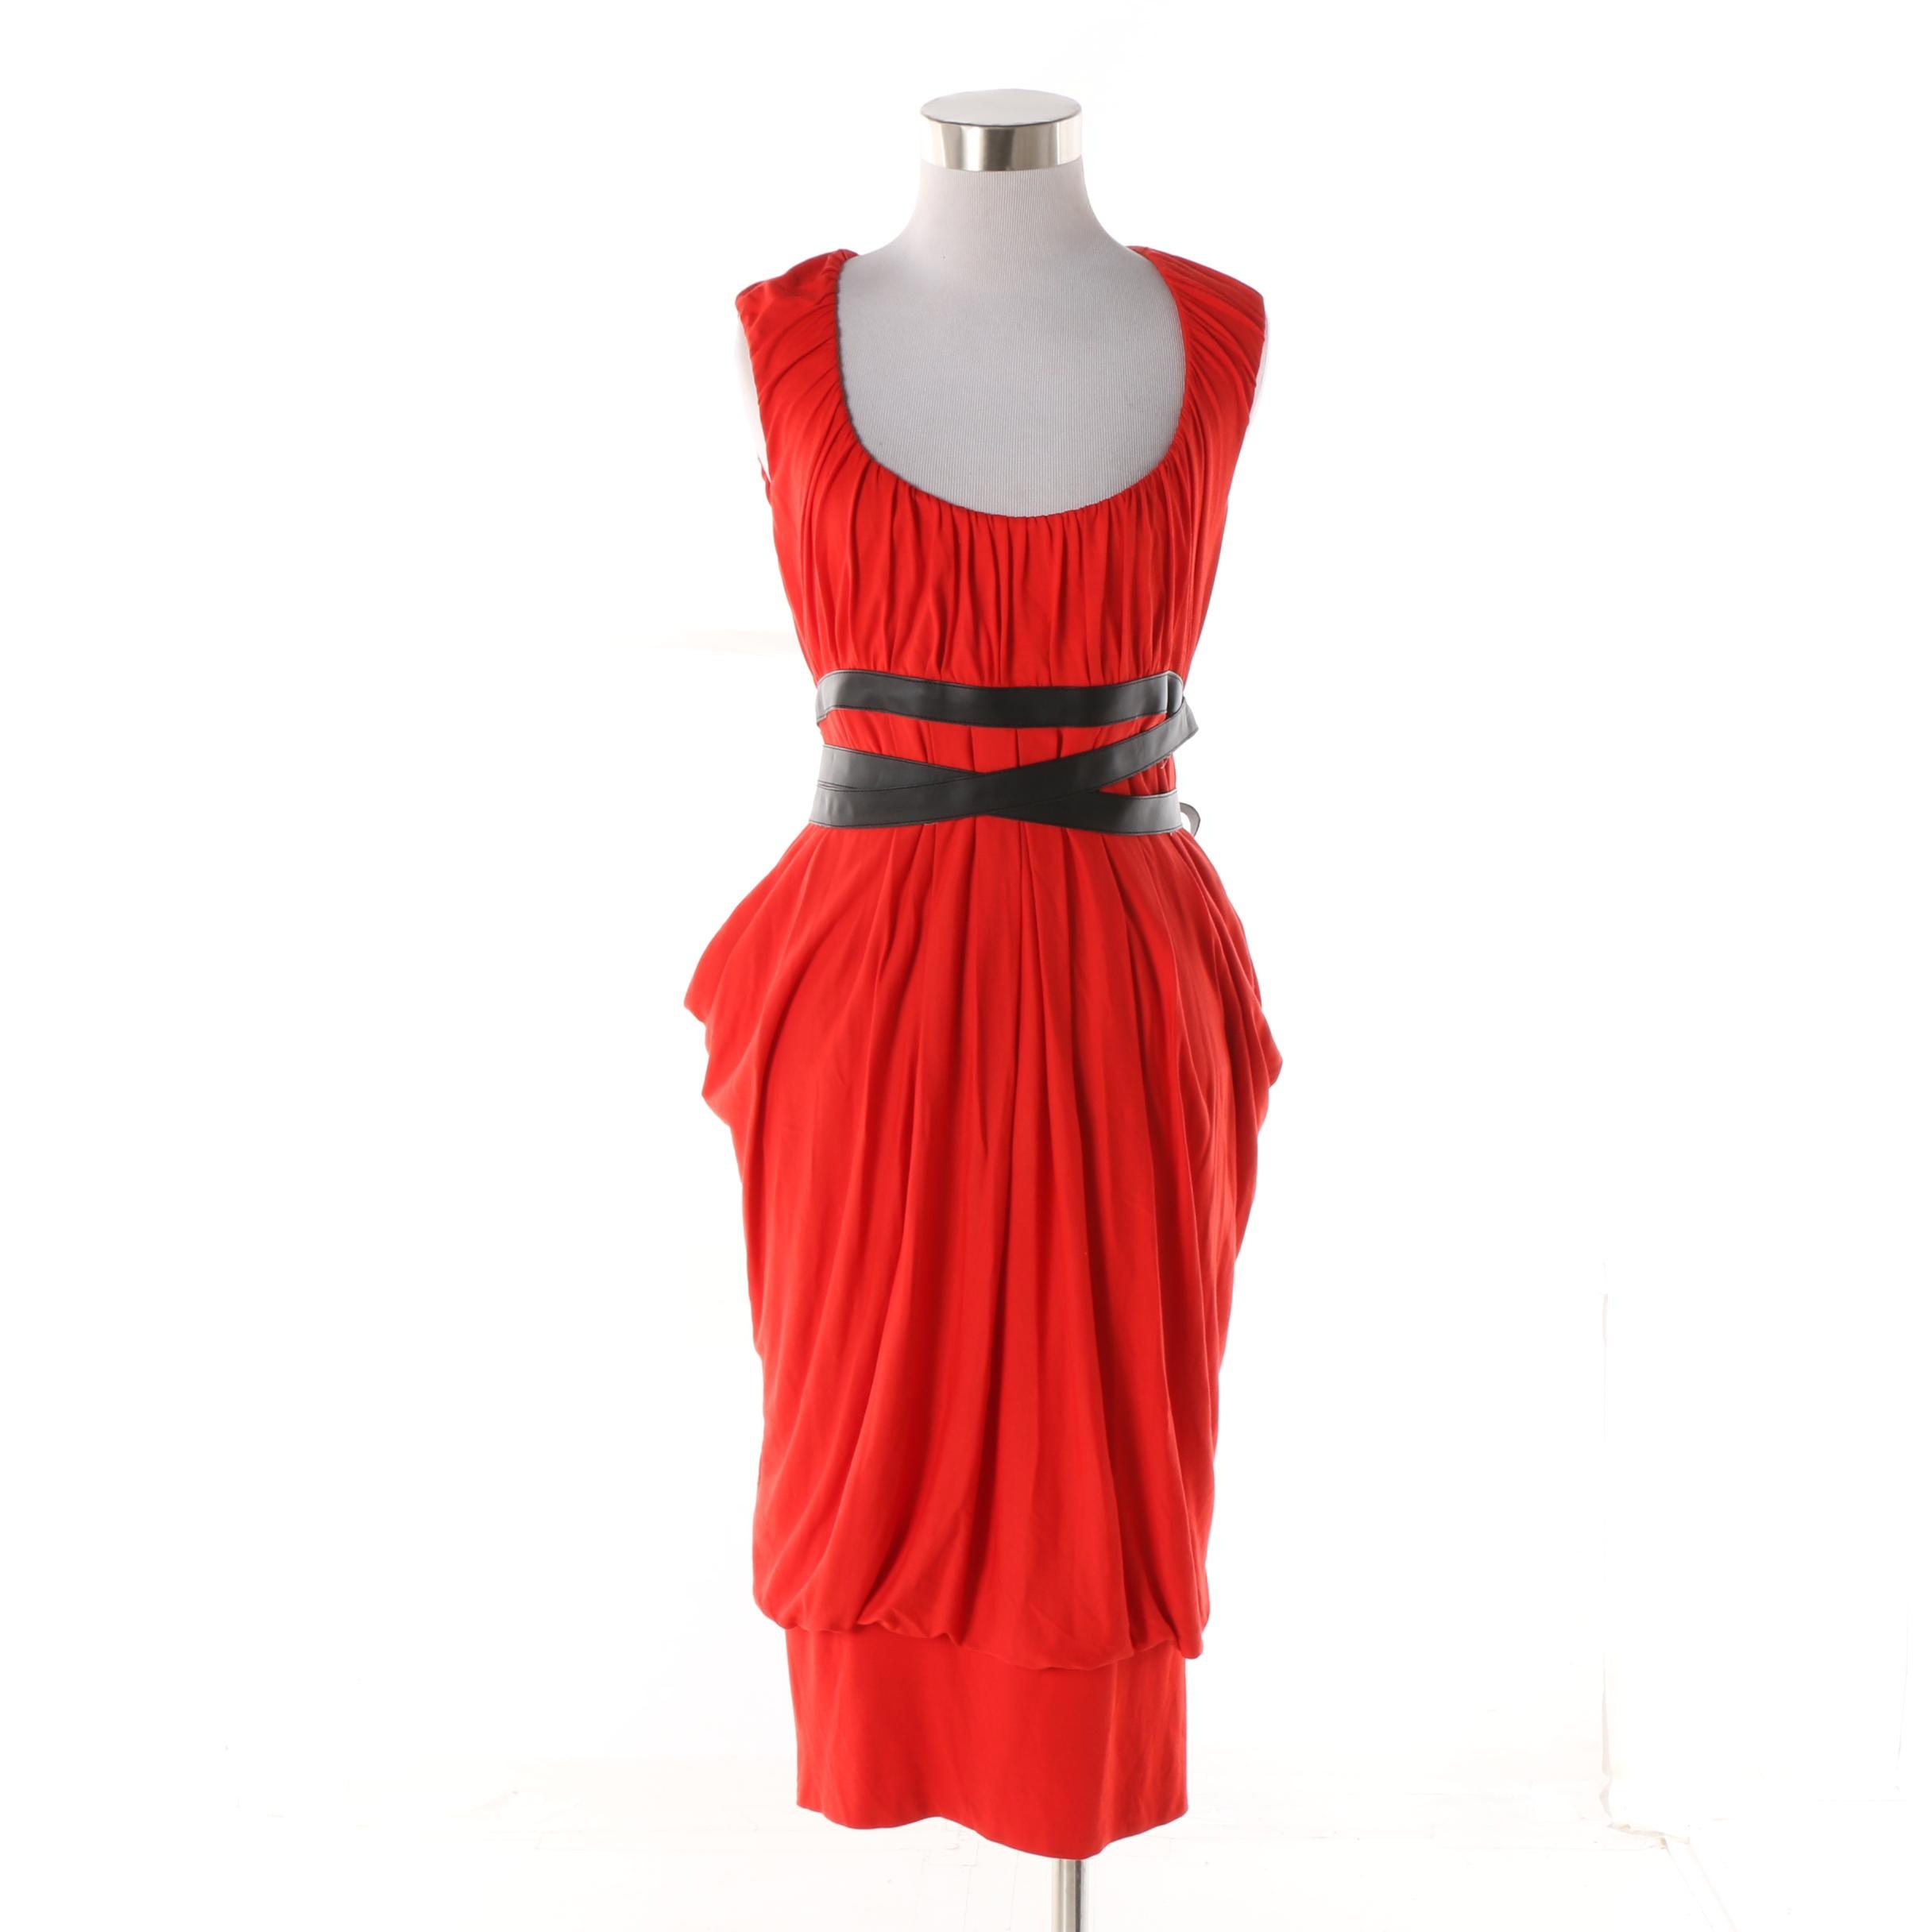 Women's McQ Alexander McQueen Red Draped Jersey Dress with Wrapped Bodice